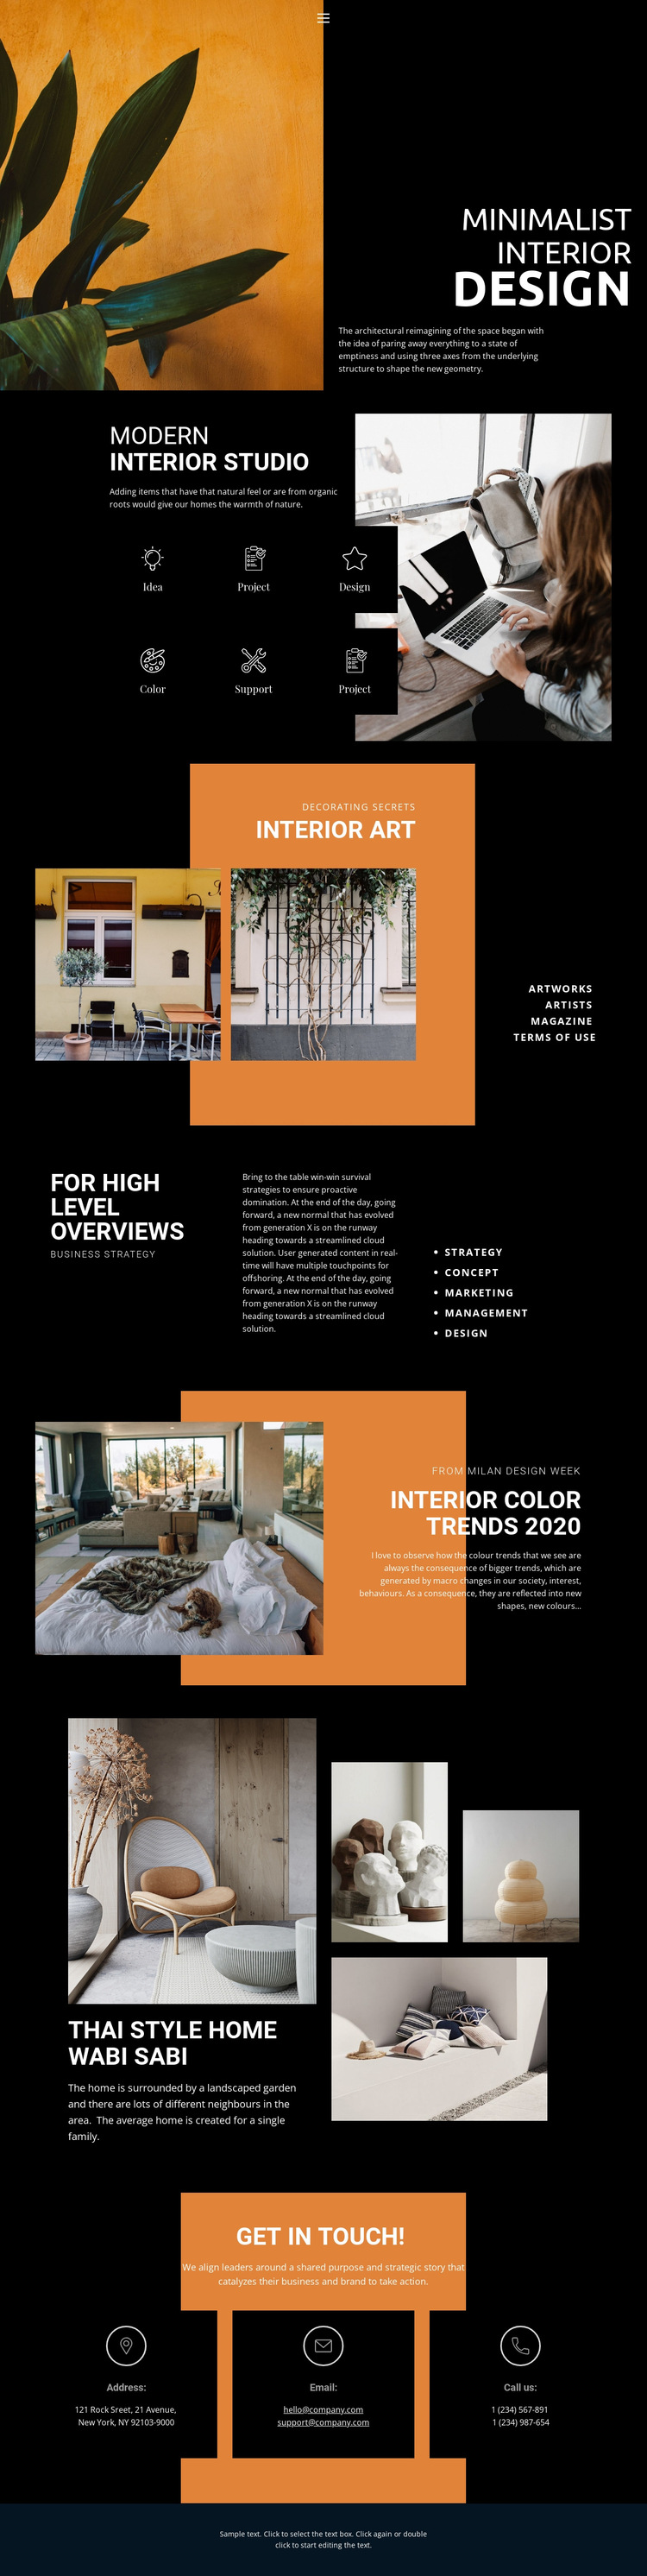 Minimalist Interior Design Html Template